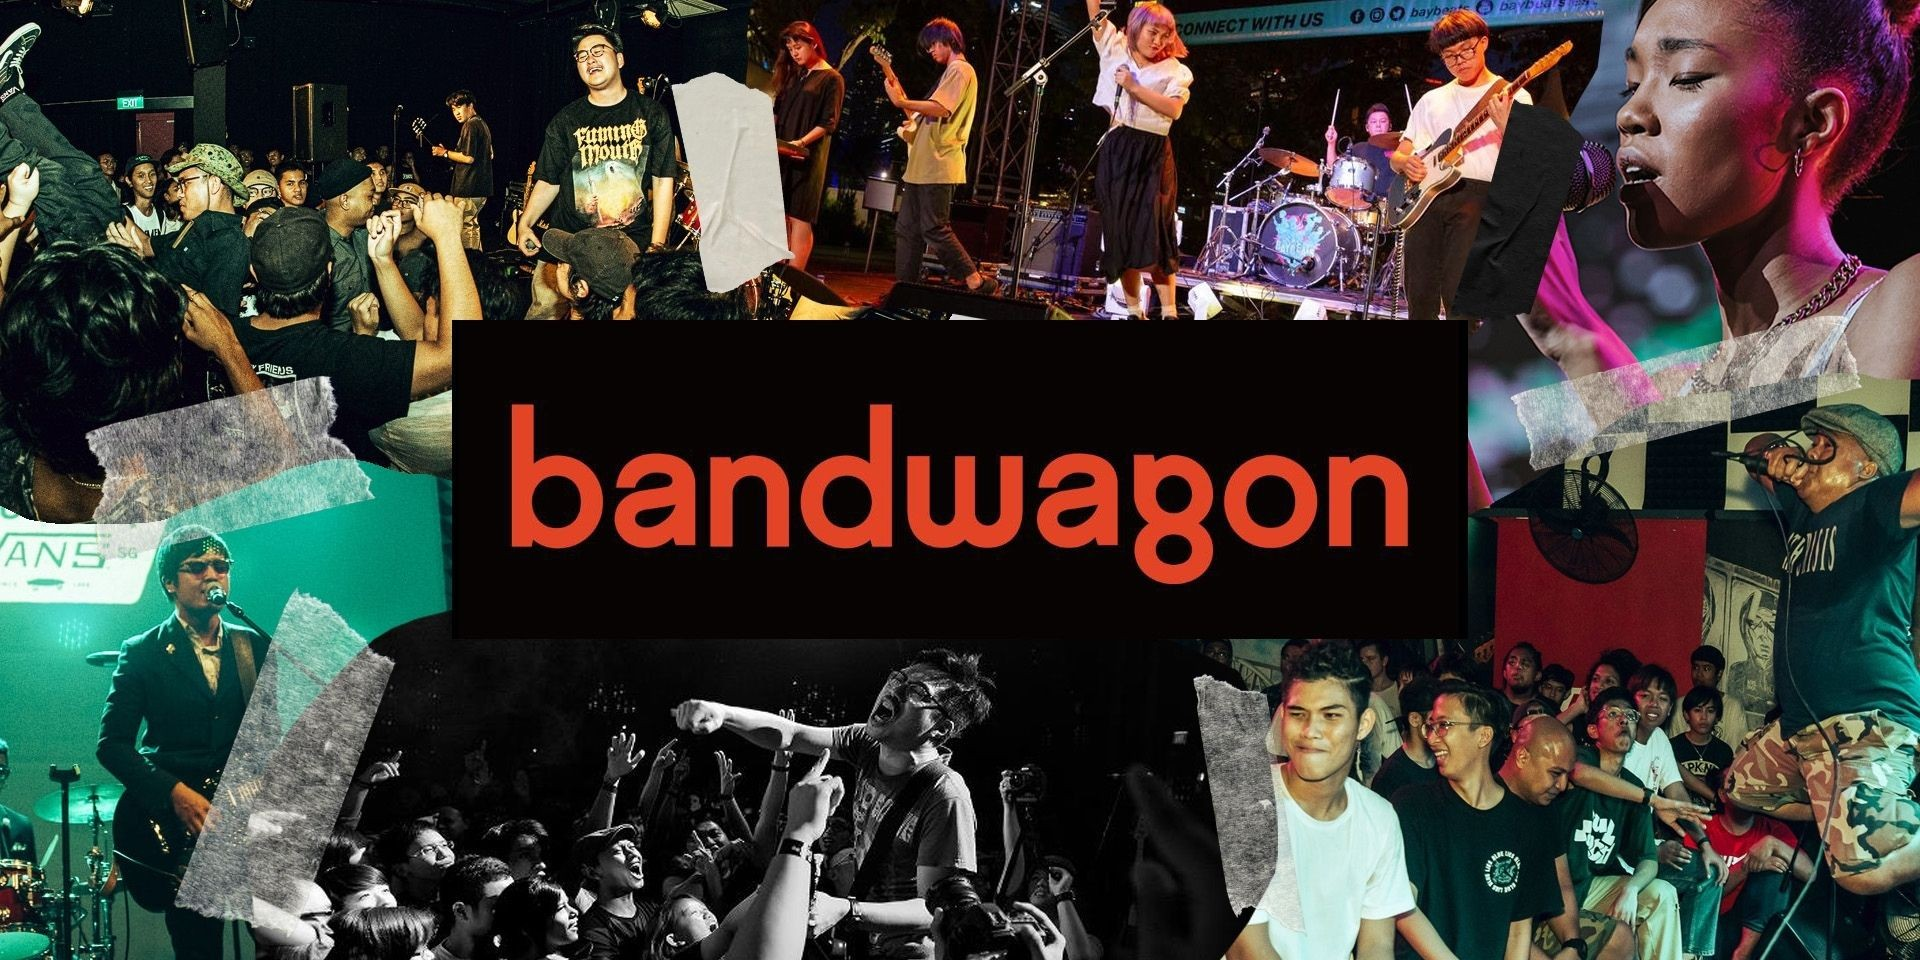 What does music journalism in Singapore look like today? A conversation on friendship, community, and solidarity